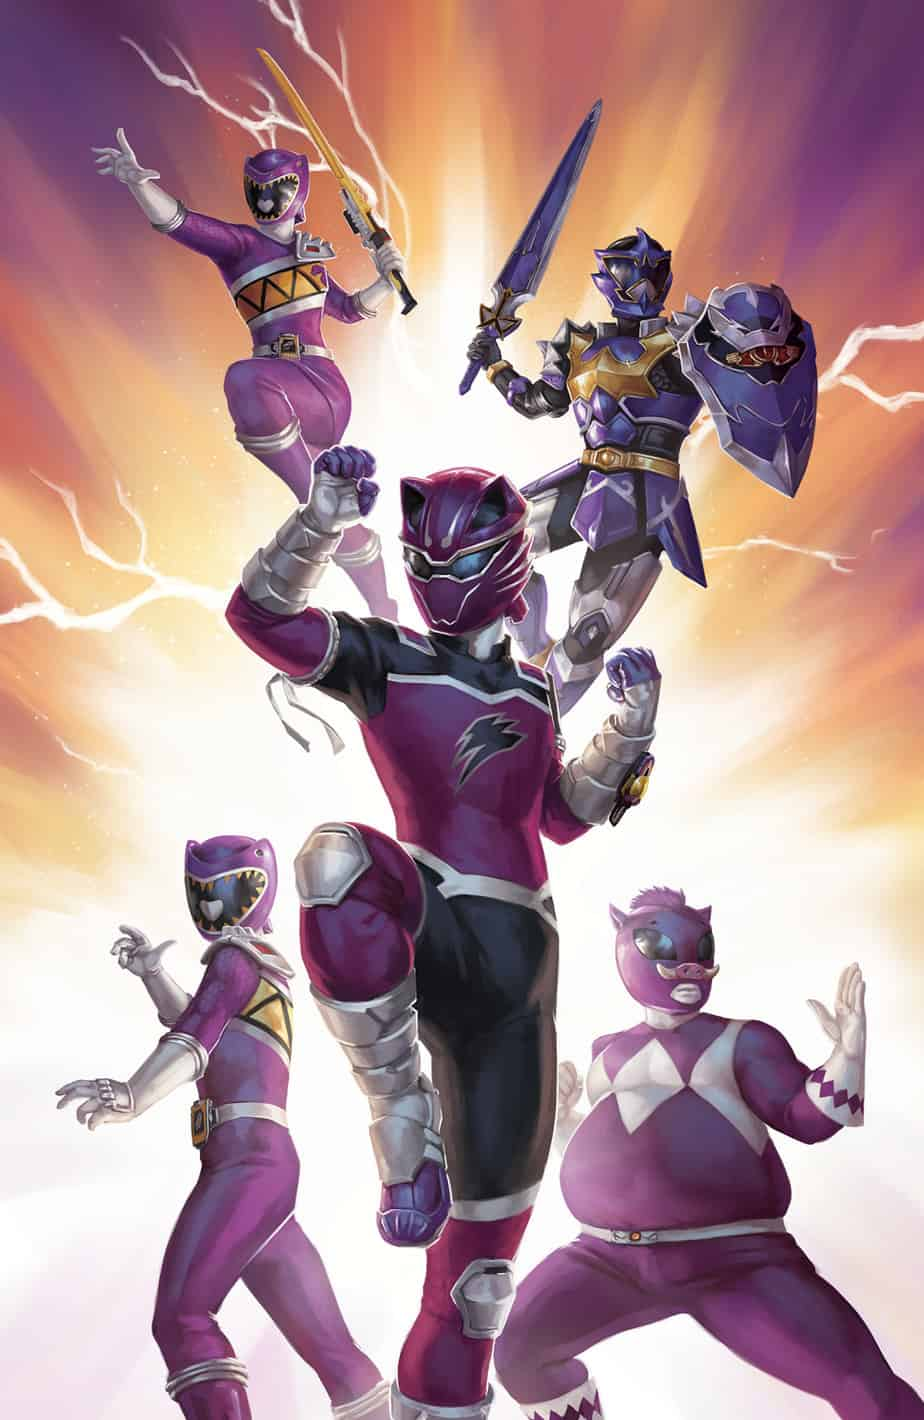 Mighty Morphin Power Rangers #35 - Incentive Cover